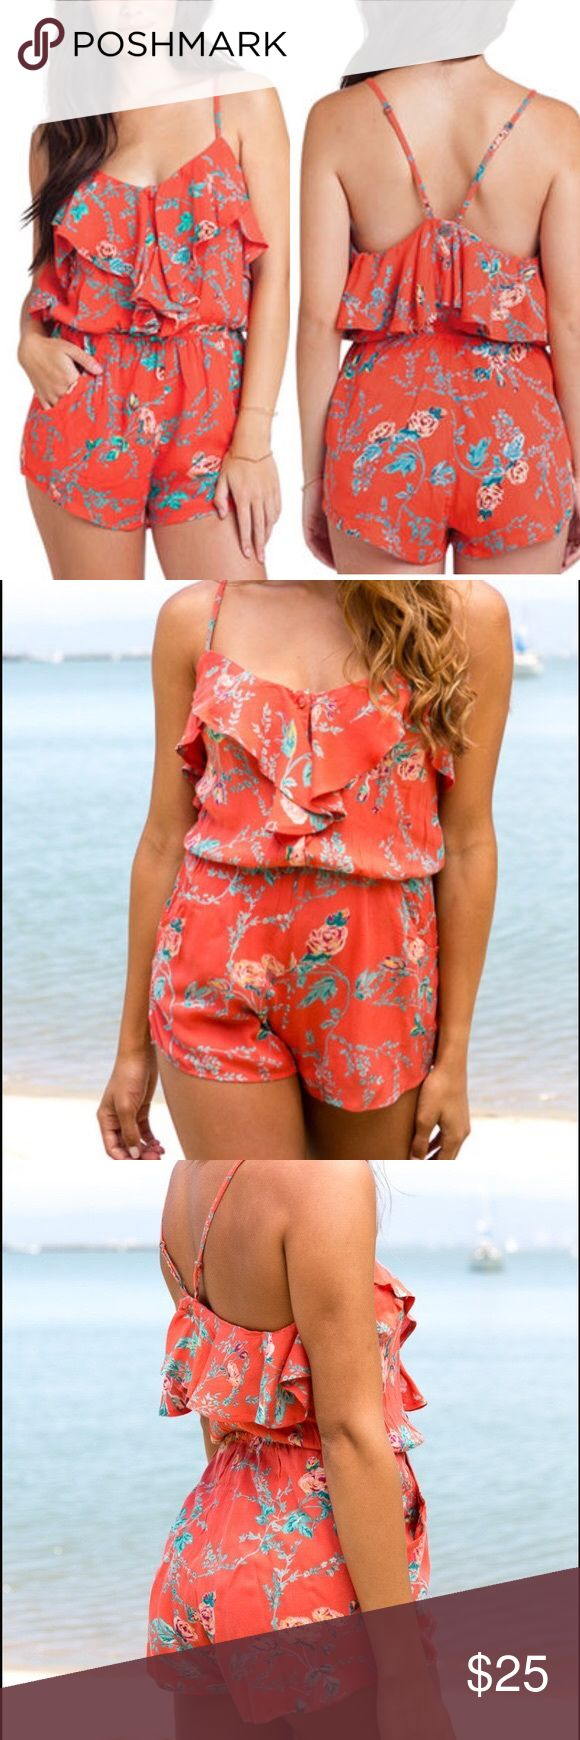 Billabong Junior's Coral Dream Escape Romper Billabong Junior's Coral Dream Escape Romper . Beautiful floral pattern. 100% Rayon for extra comfort on your body. Caring instructions: Wash in cold and hang to dry. This is new with tags! Only size large available. Size chart available in last pictures. Billabong Pants Jumpsuits & Rompers